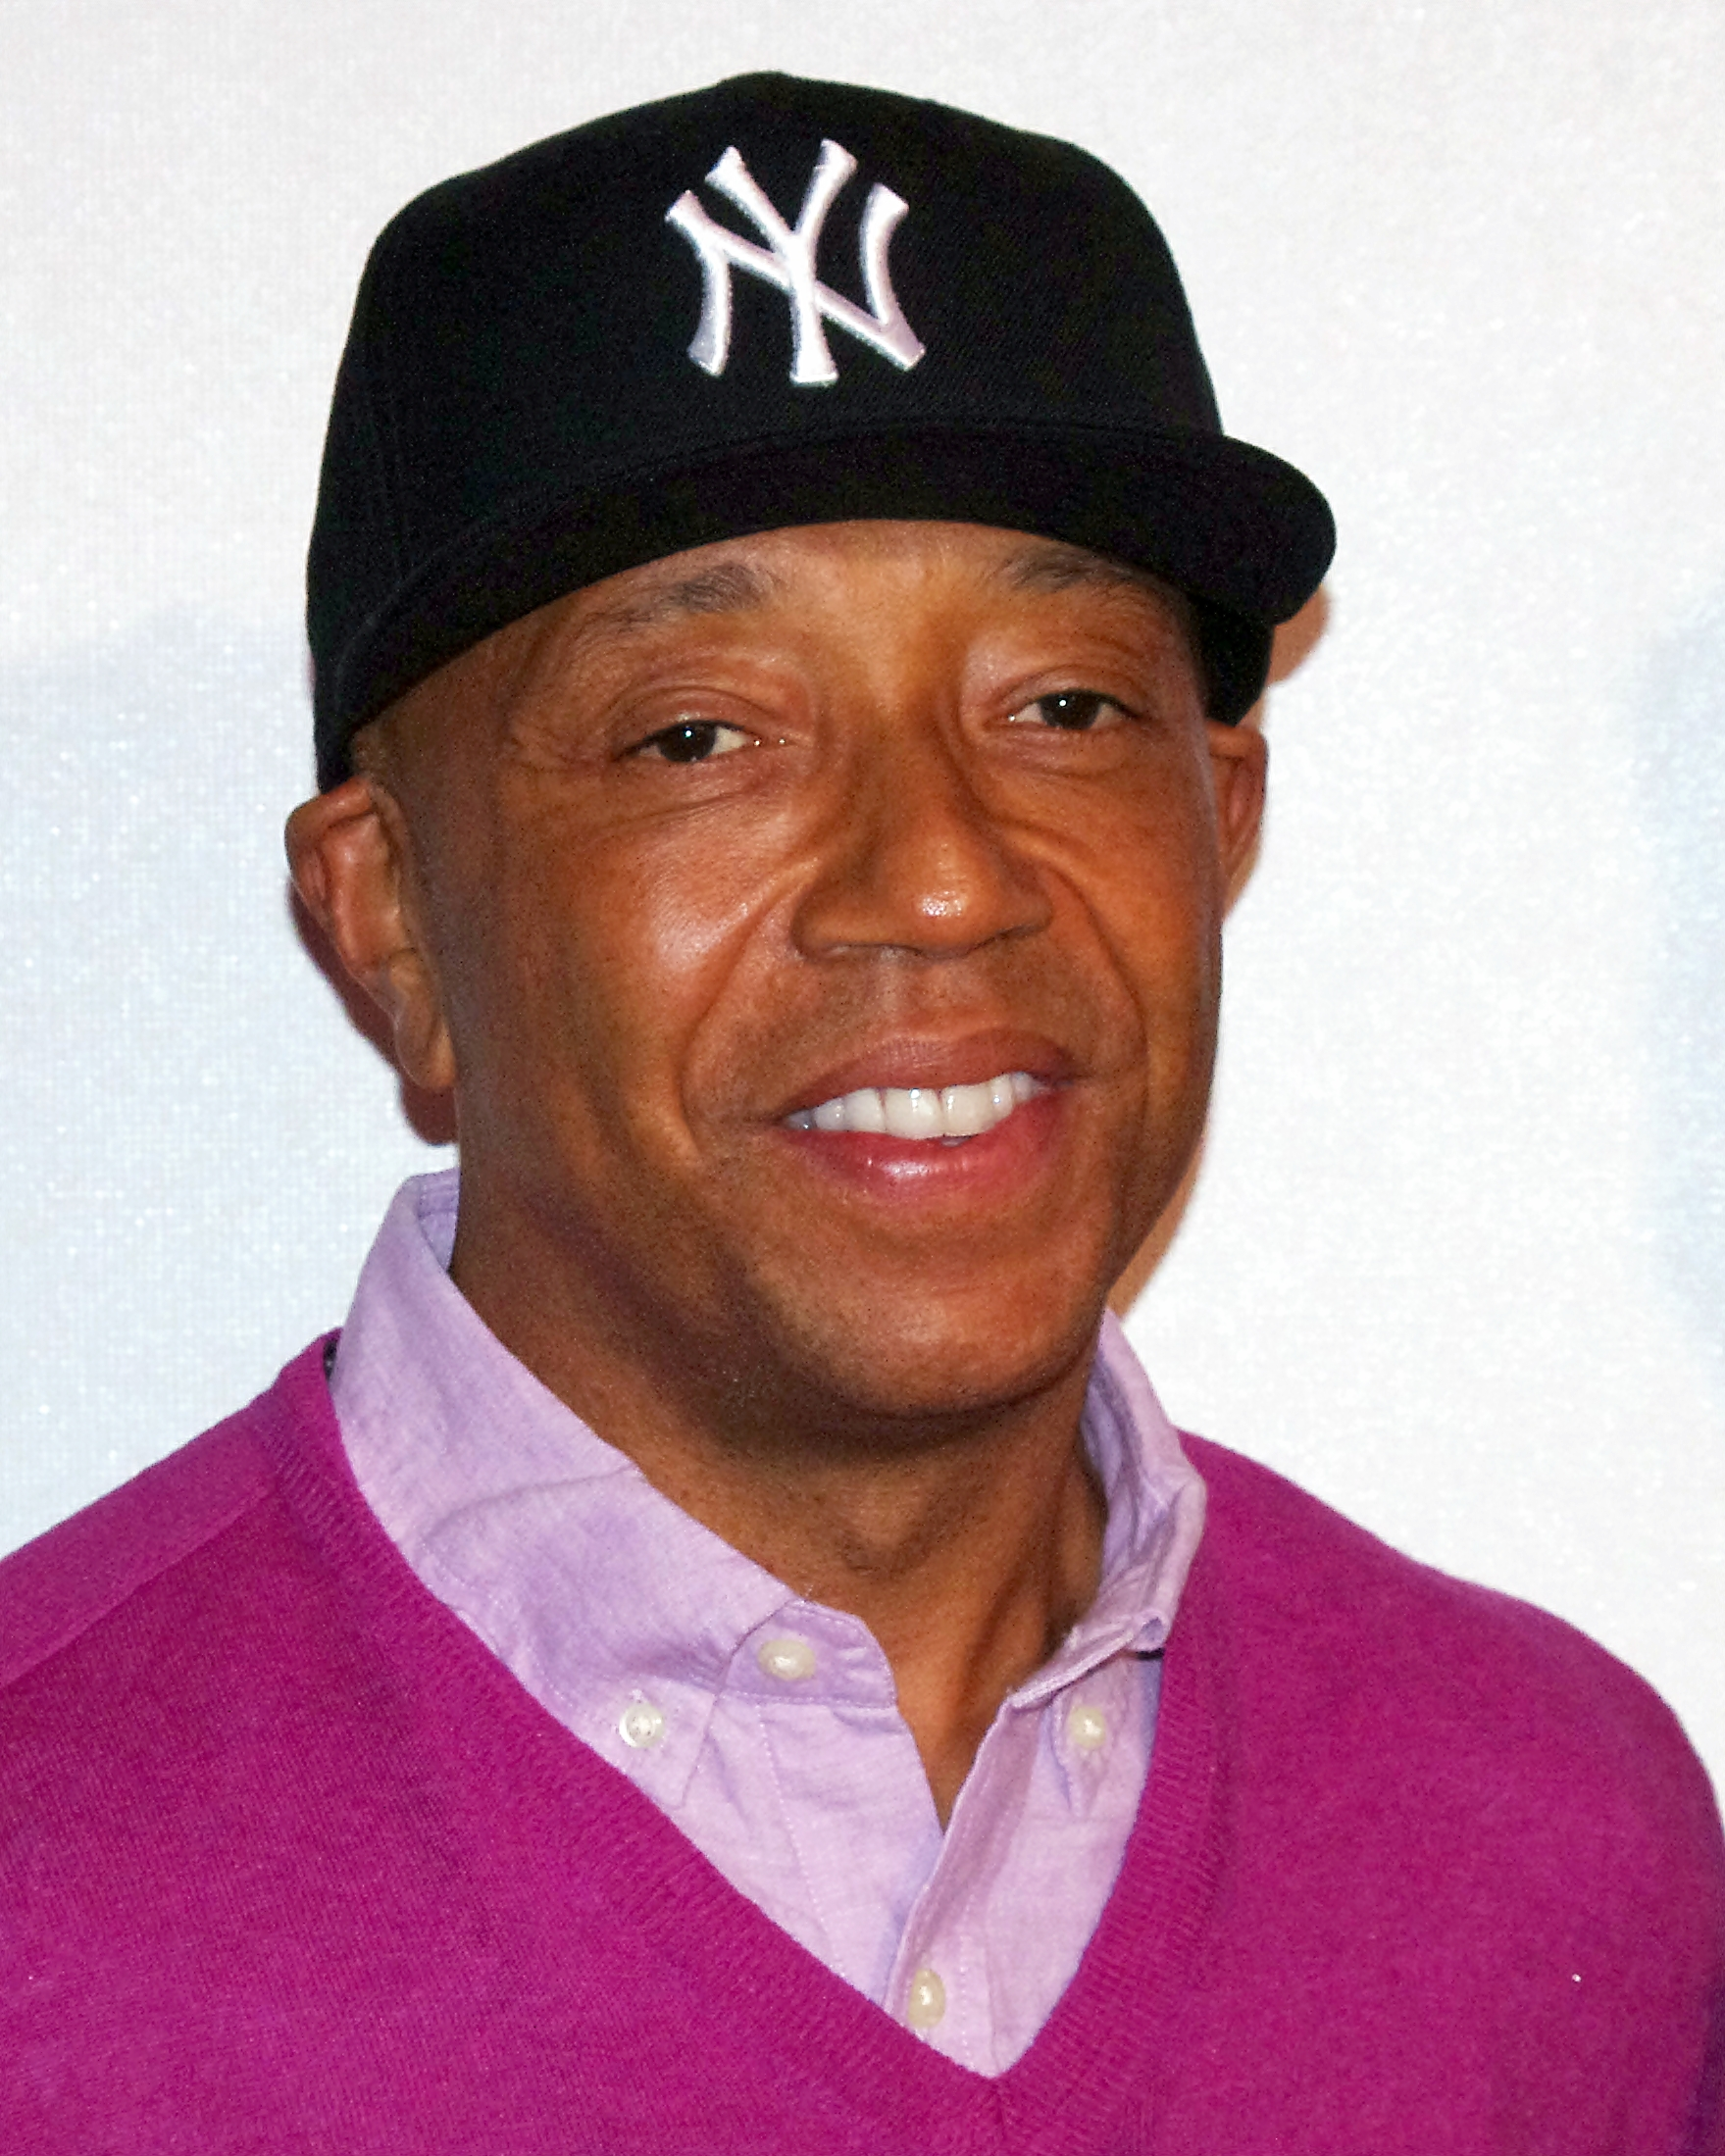 Russell Simmons photos (image hosted by wikimedia.org)